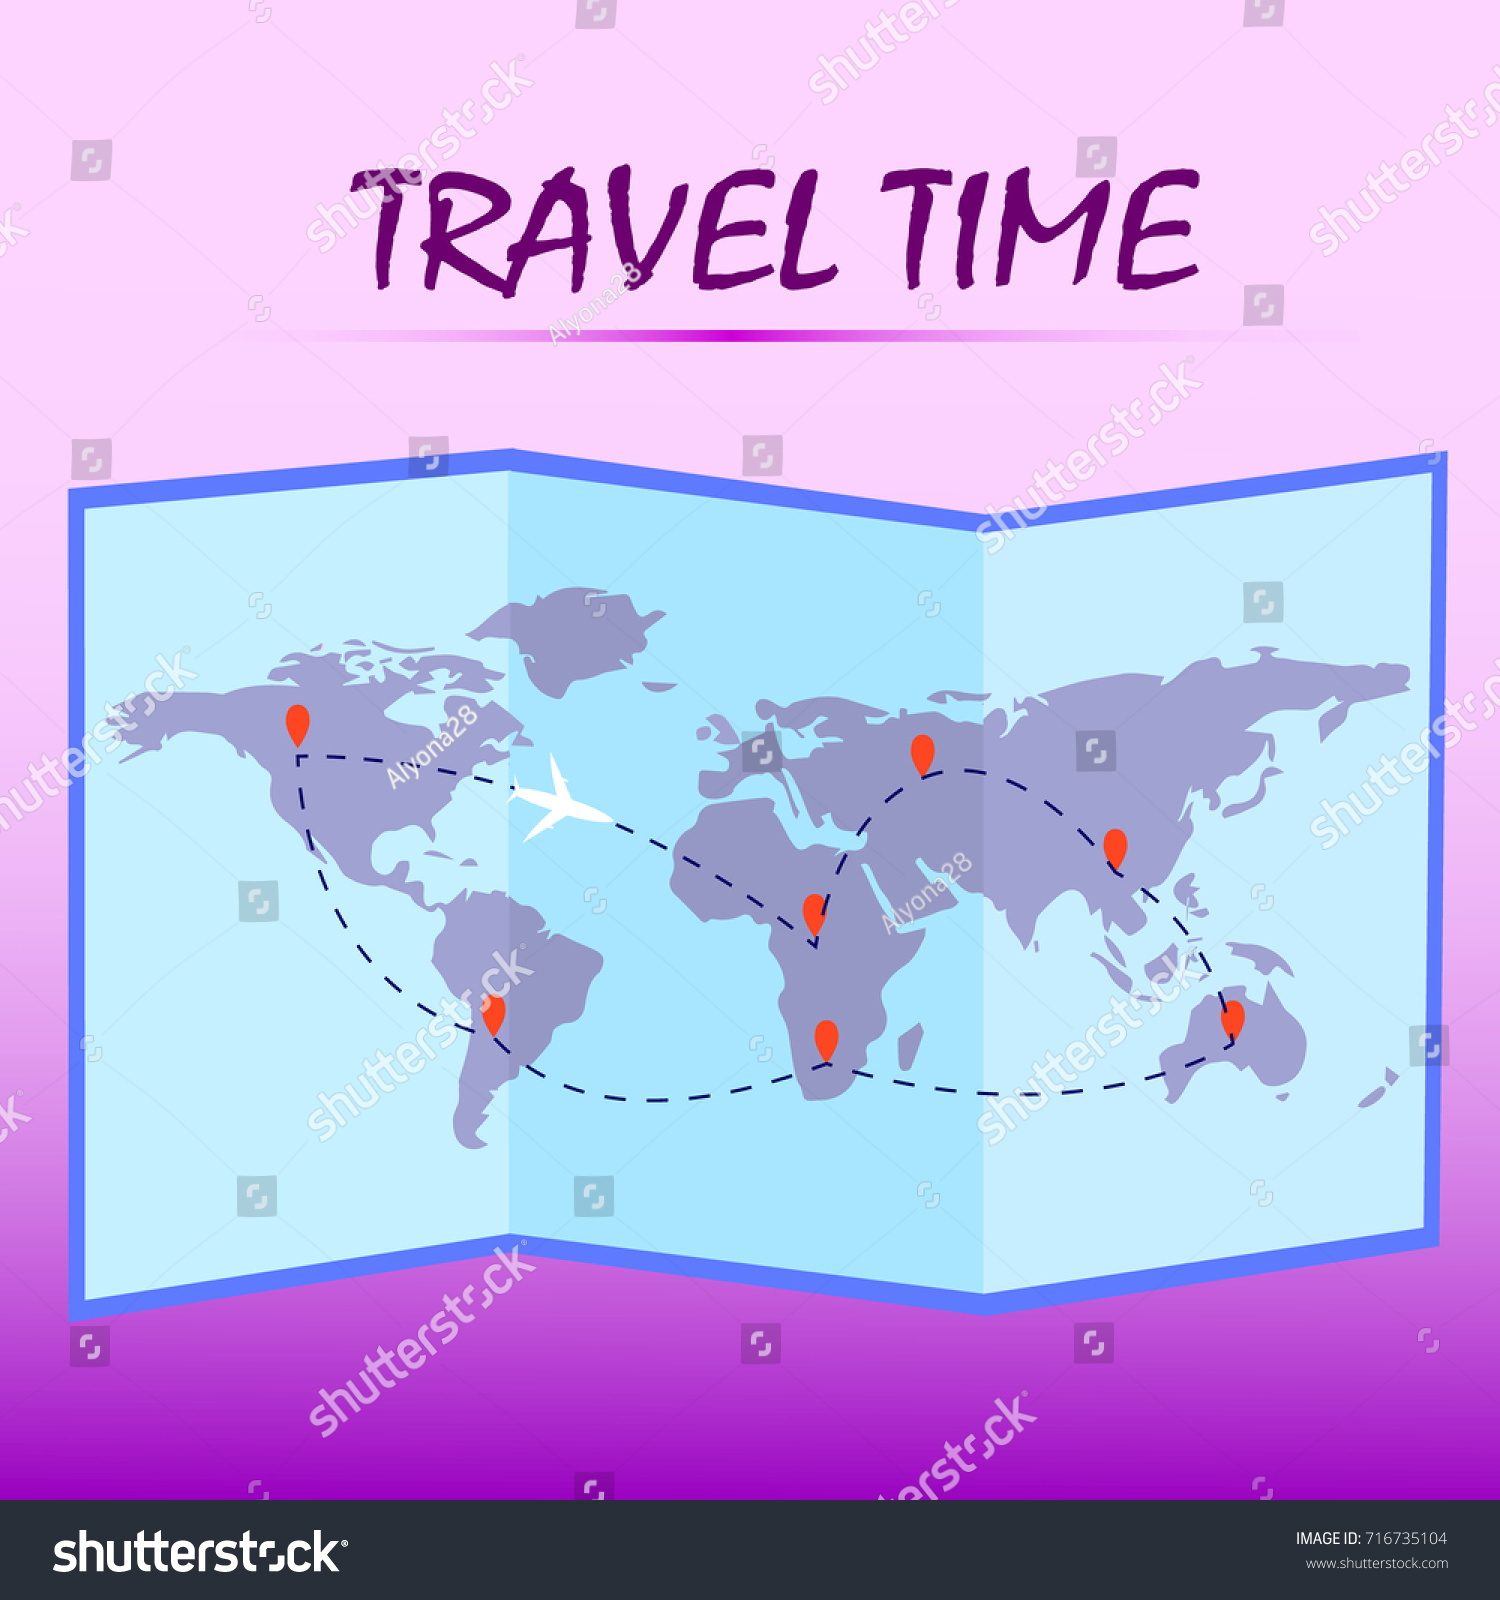 Travel time folded world map route on stock vector hd royalty free folded world map with route on pink background vector illustration gumiabroncs Images